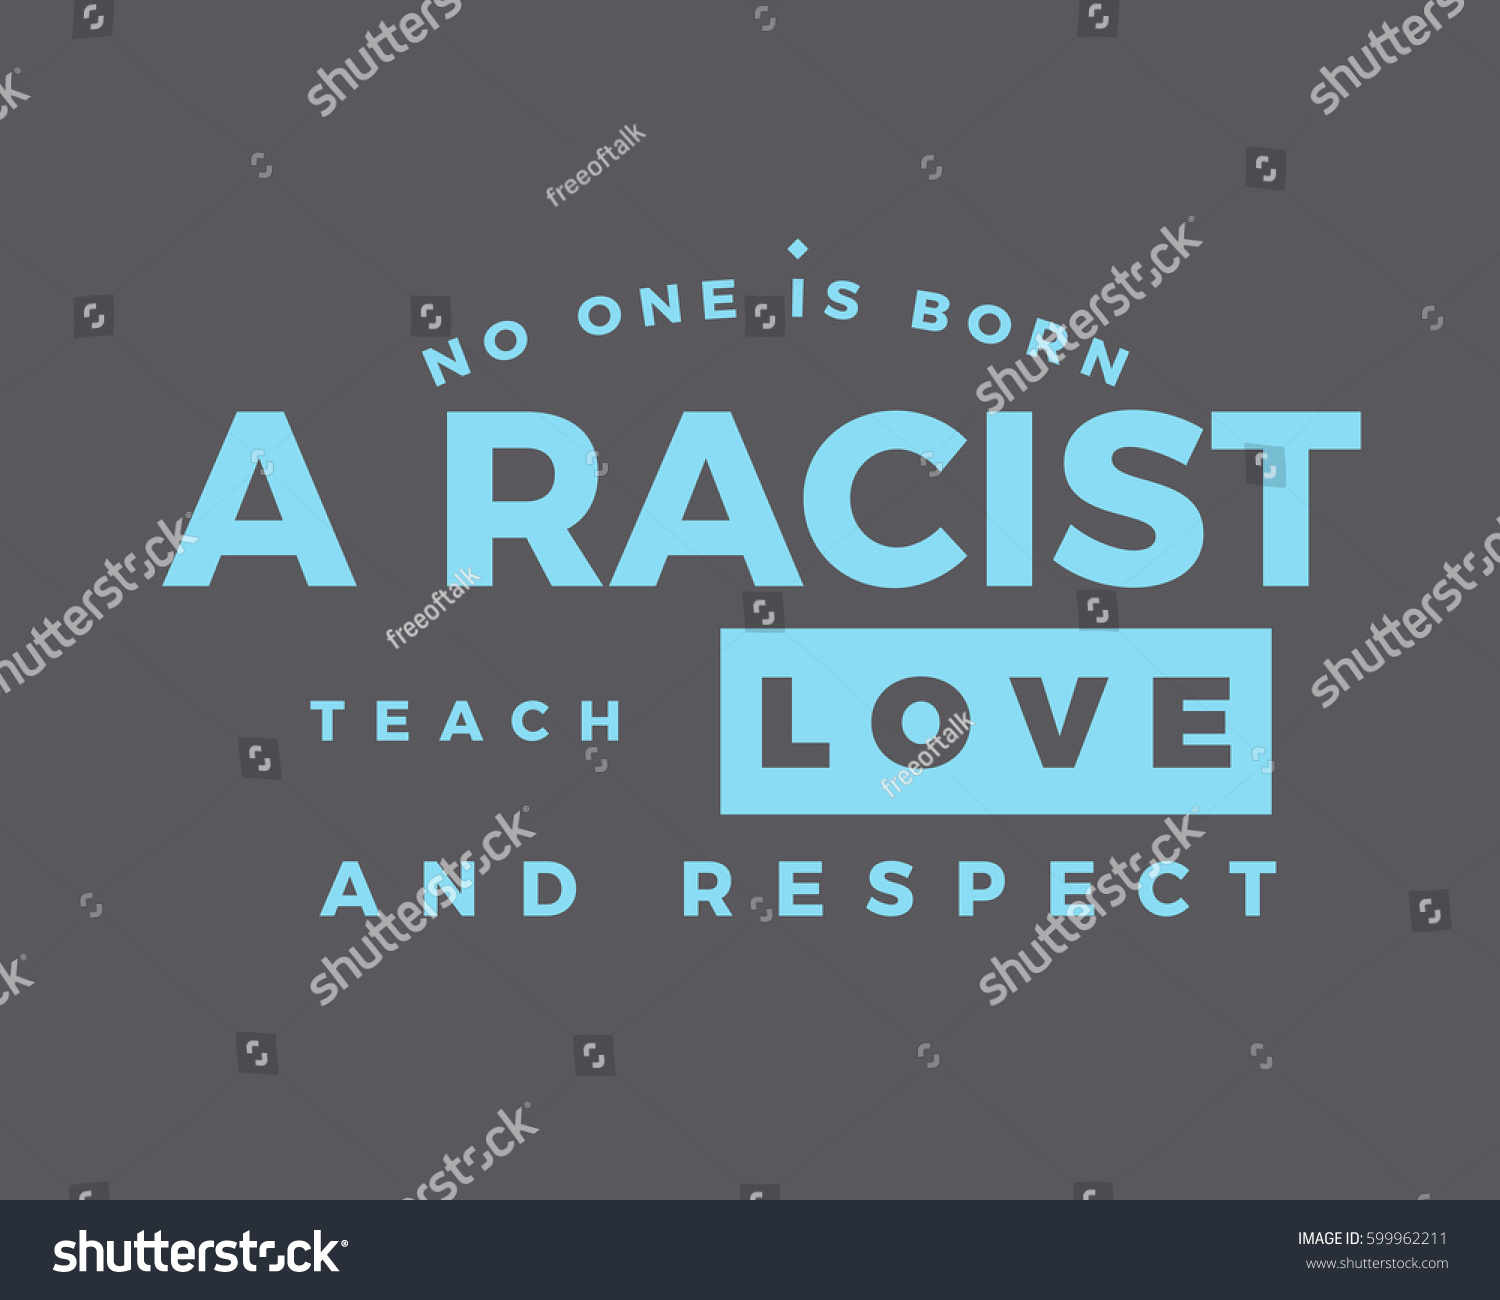 Love And Respect Quotes No One Born Racist Teach Love Stock Vector 599962211  Shutterstock